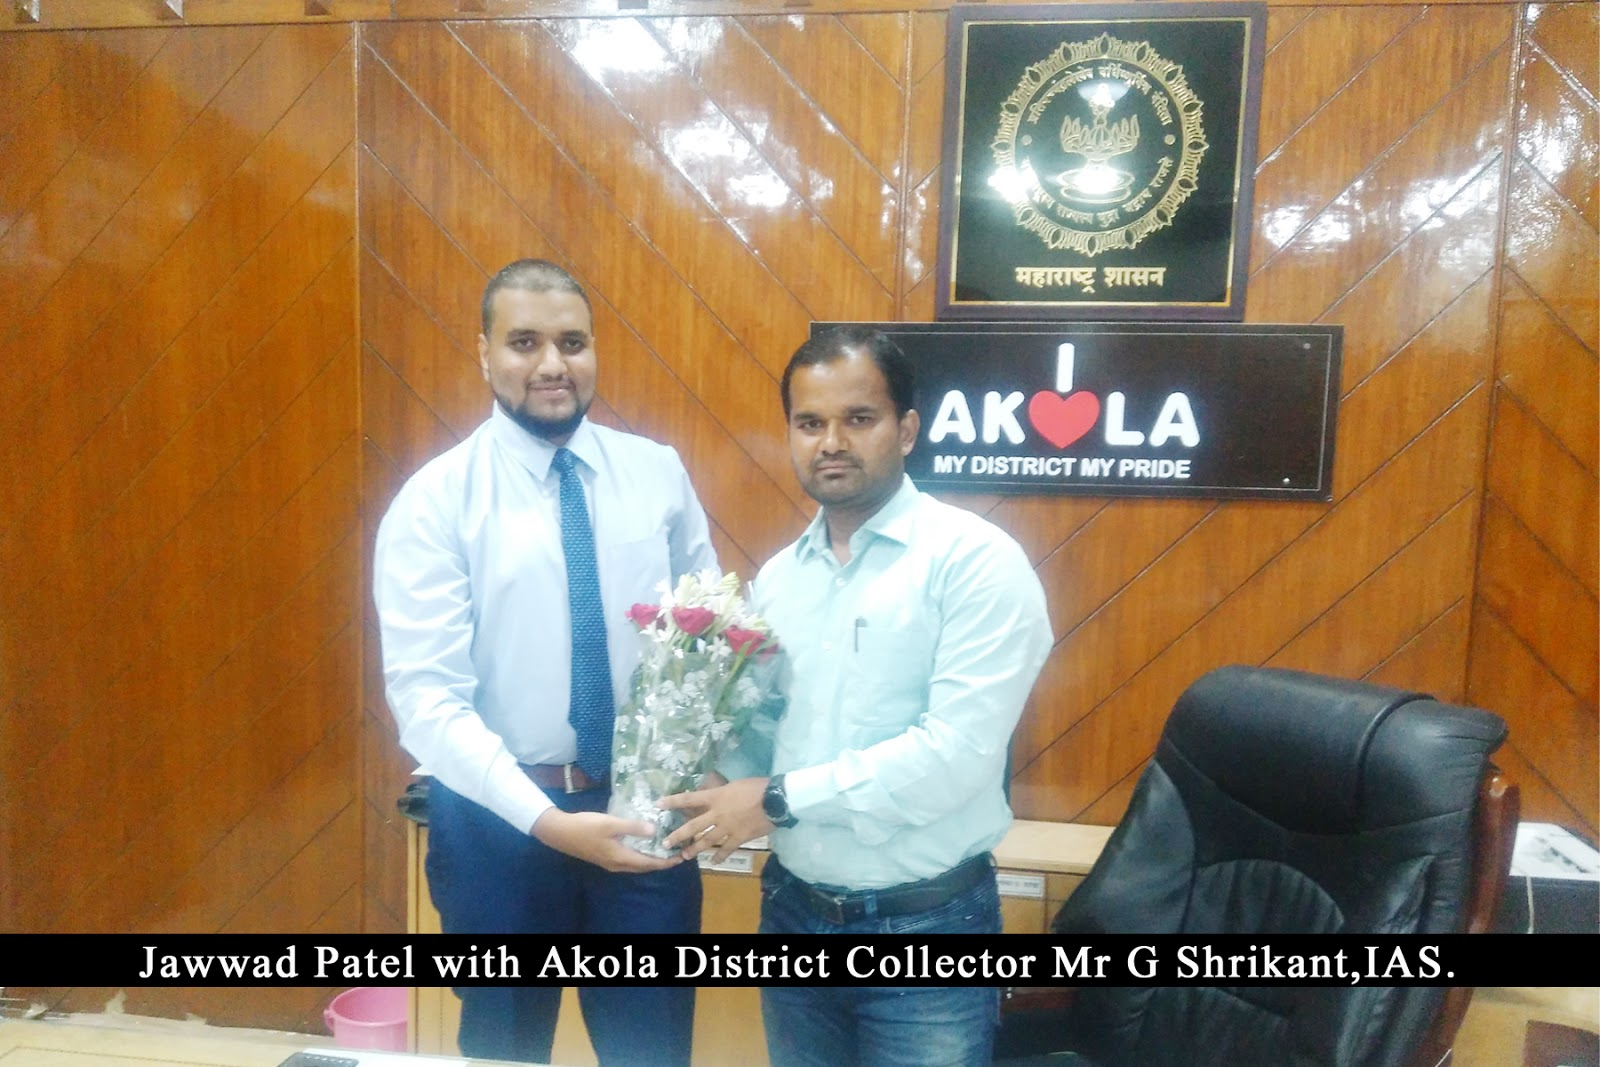 Jawwad Patel with Collector Akola